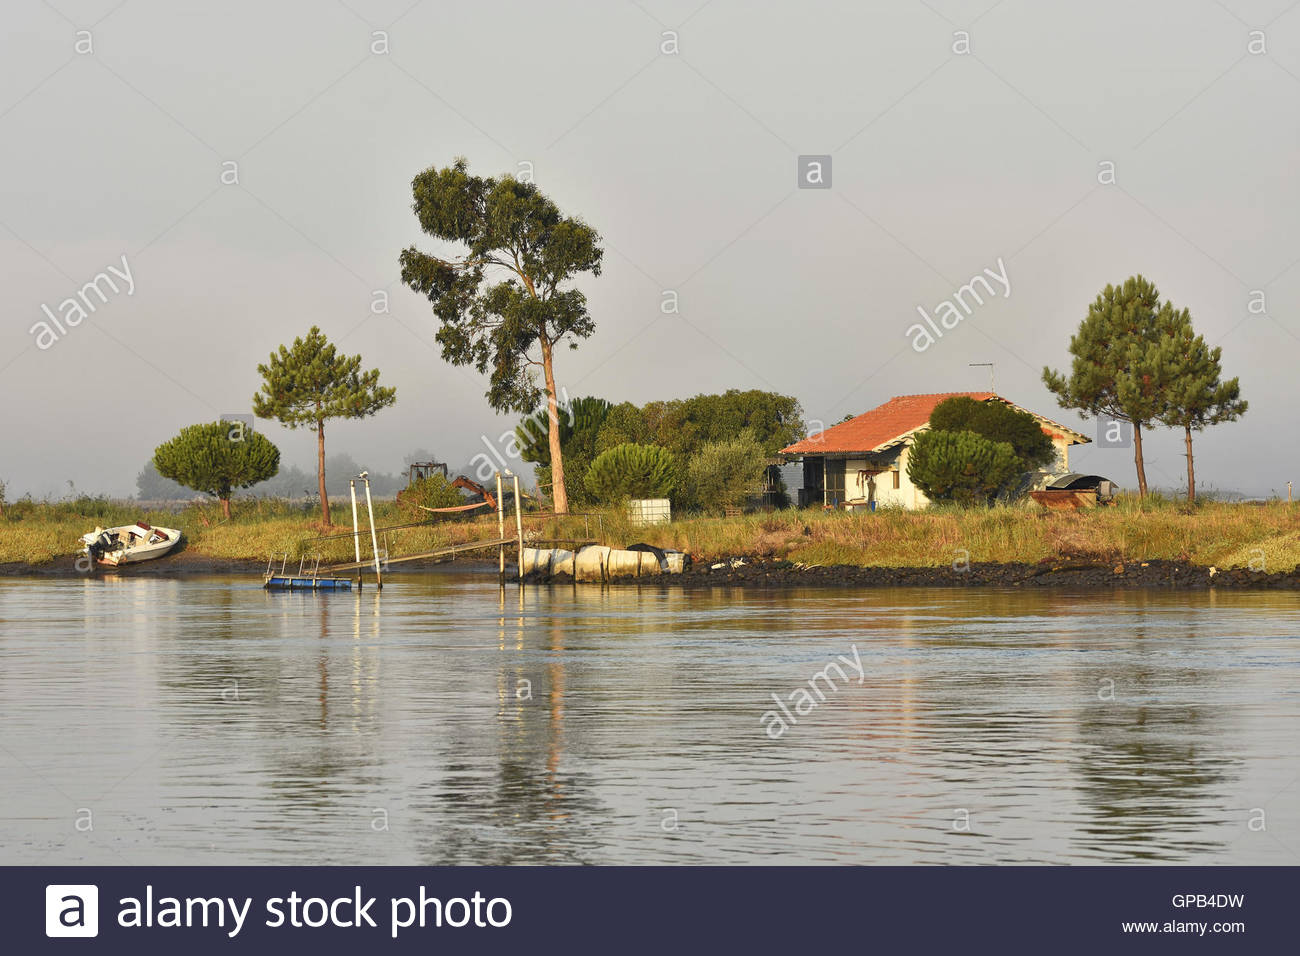 Riverside house and fishing boats in Aveiro Portugal Europe. Stock Photo